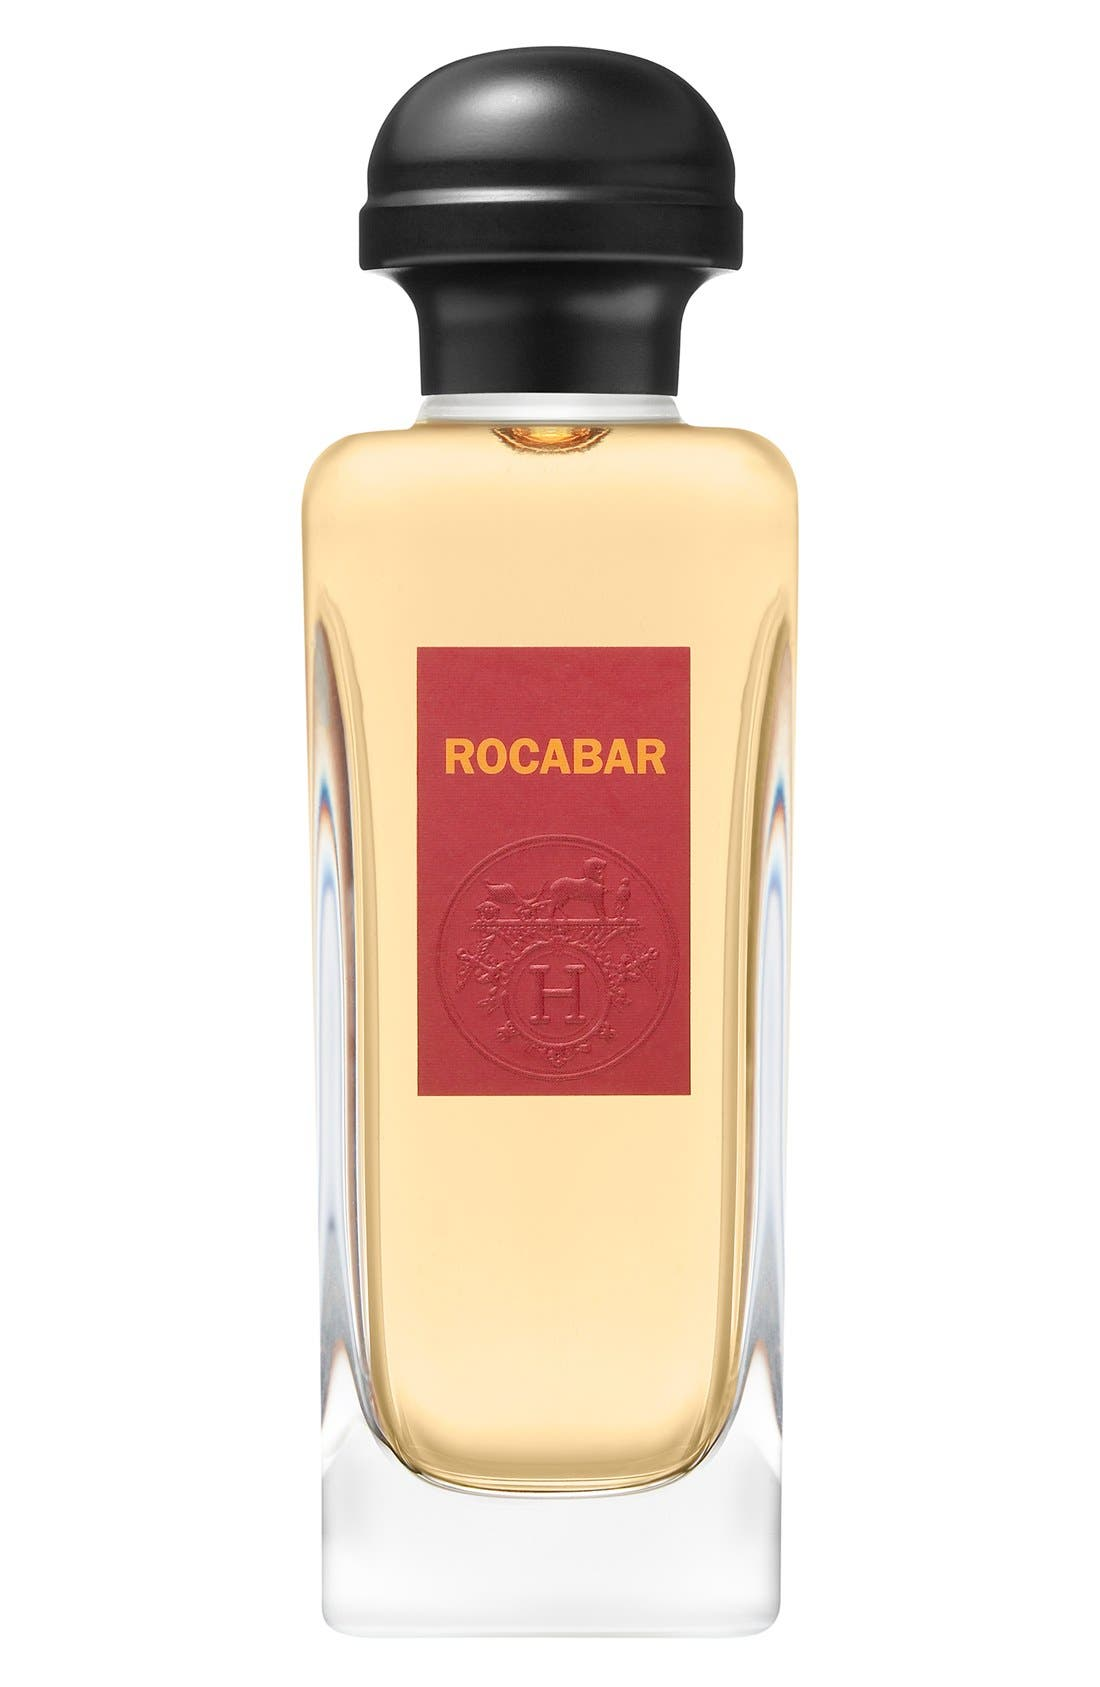 Rocabar - Eau de toilette,                         Main,                         color, NO COLOR